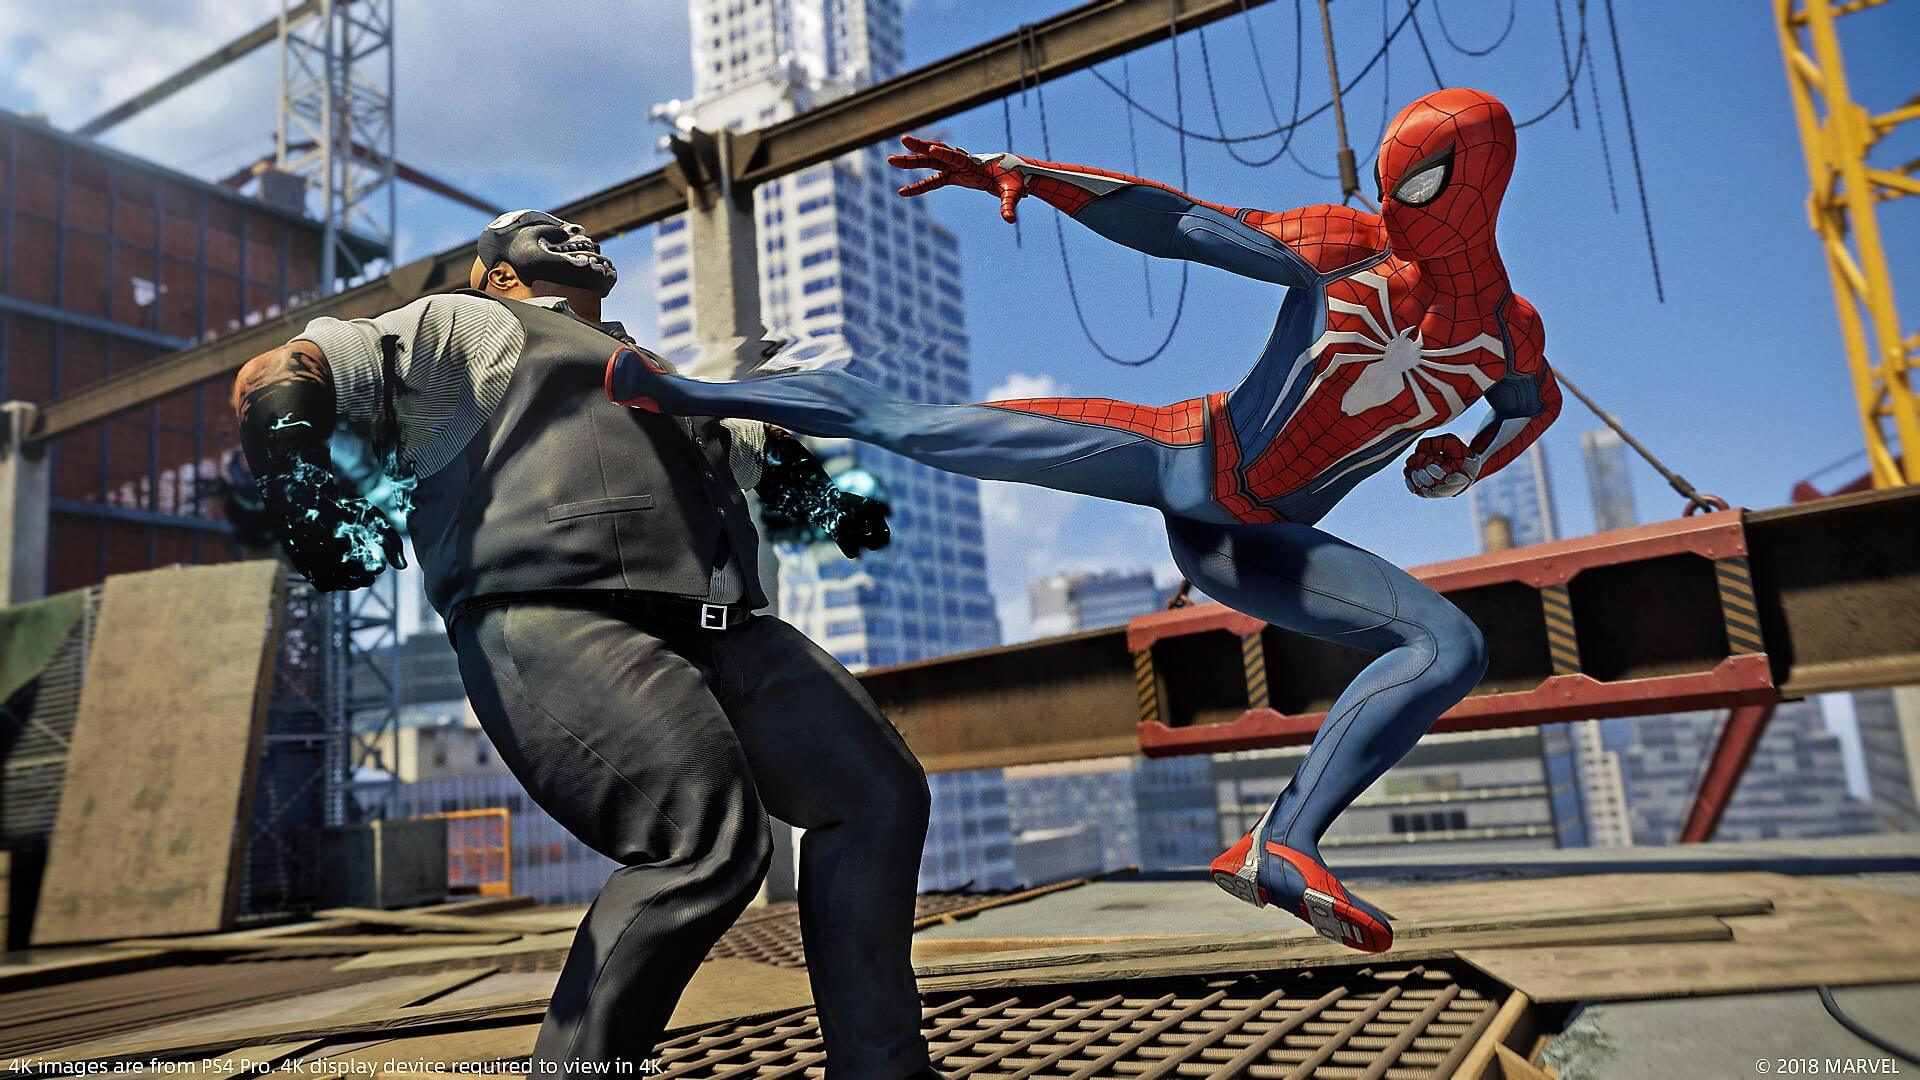 Sony purchases Insomniac, developer behind PS4-exclusive Spider-Man